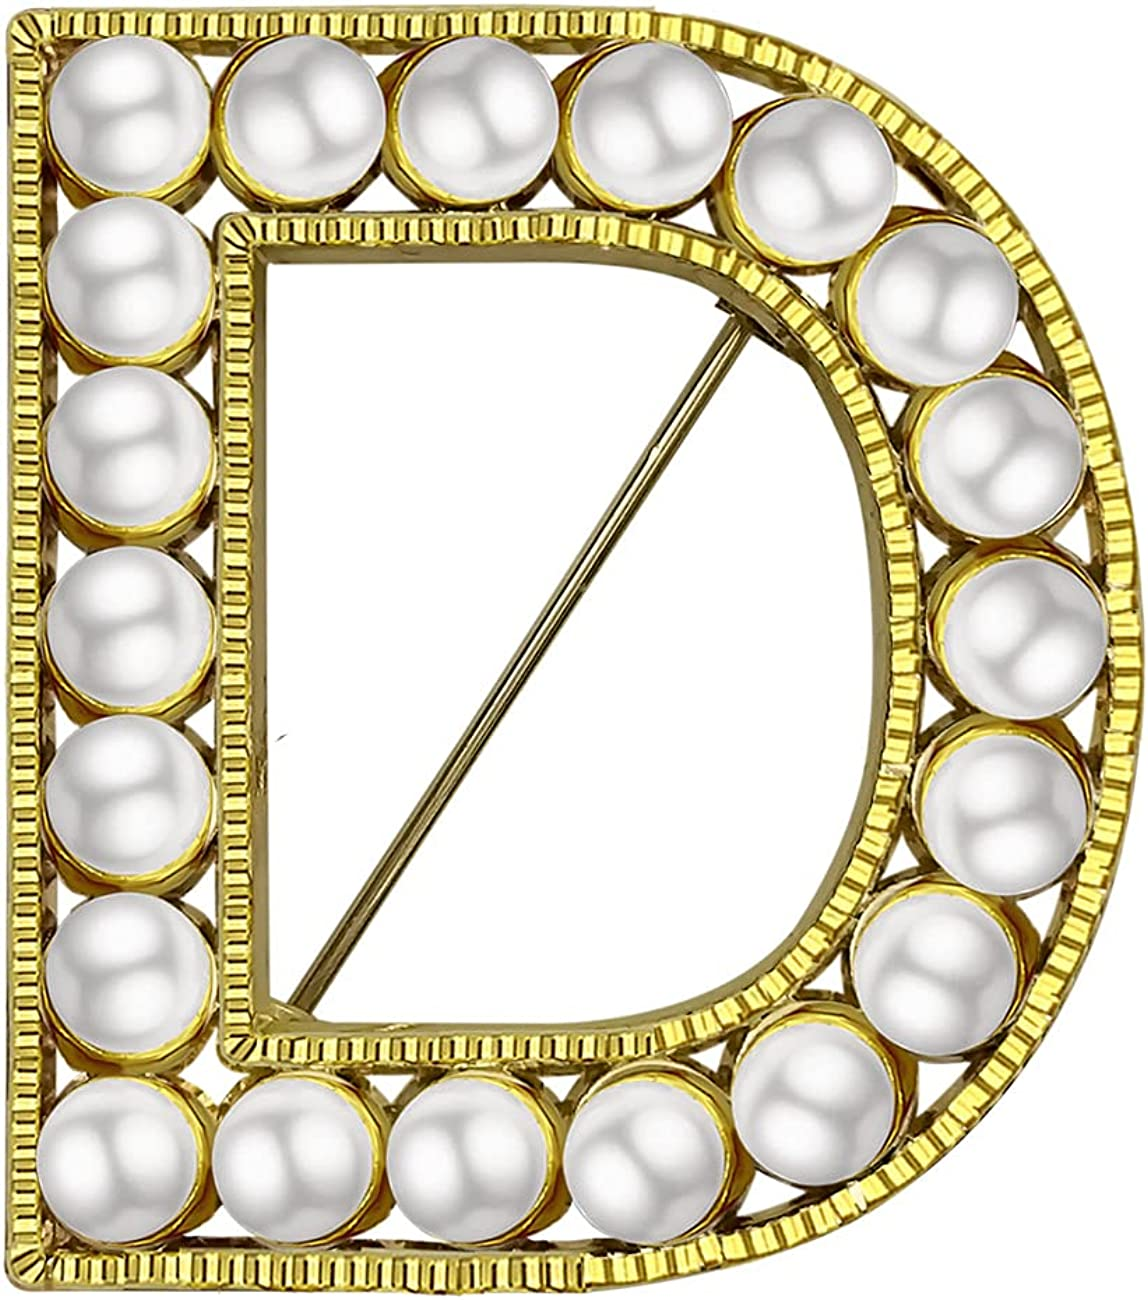 XGALBLA Letter Brooch Pins Letters(A-Z) Plated Metal Simulted Pearl Brooches for Women Girls Inspired Gift(Gold Tone)